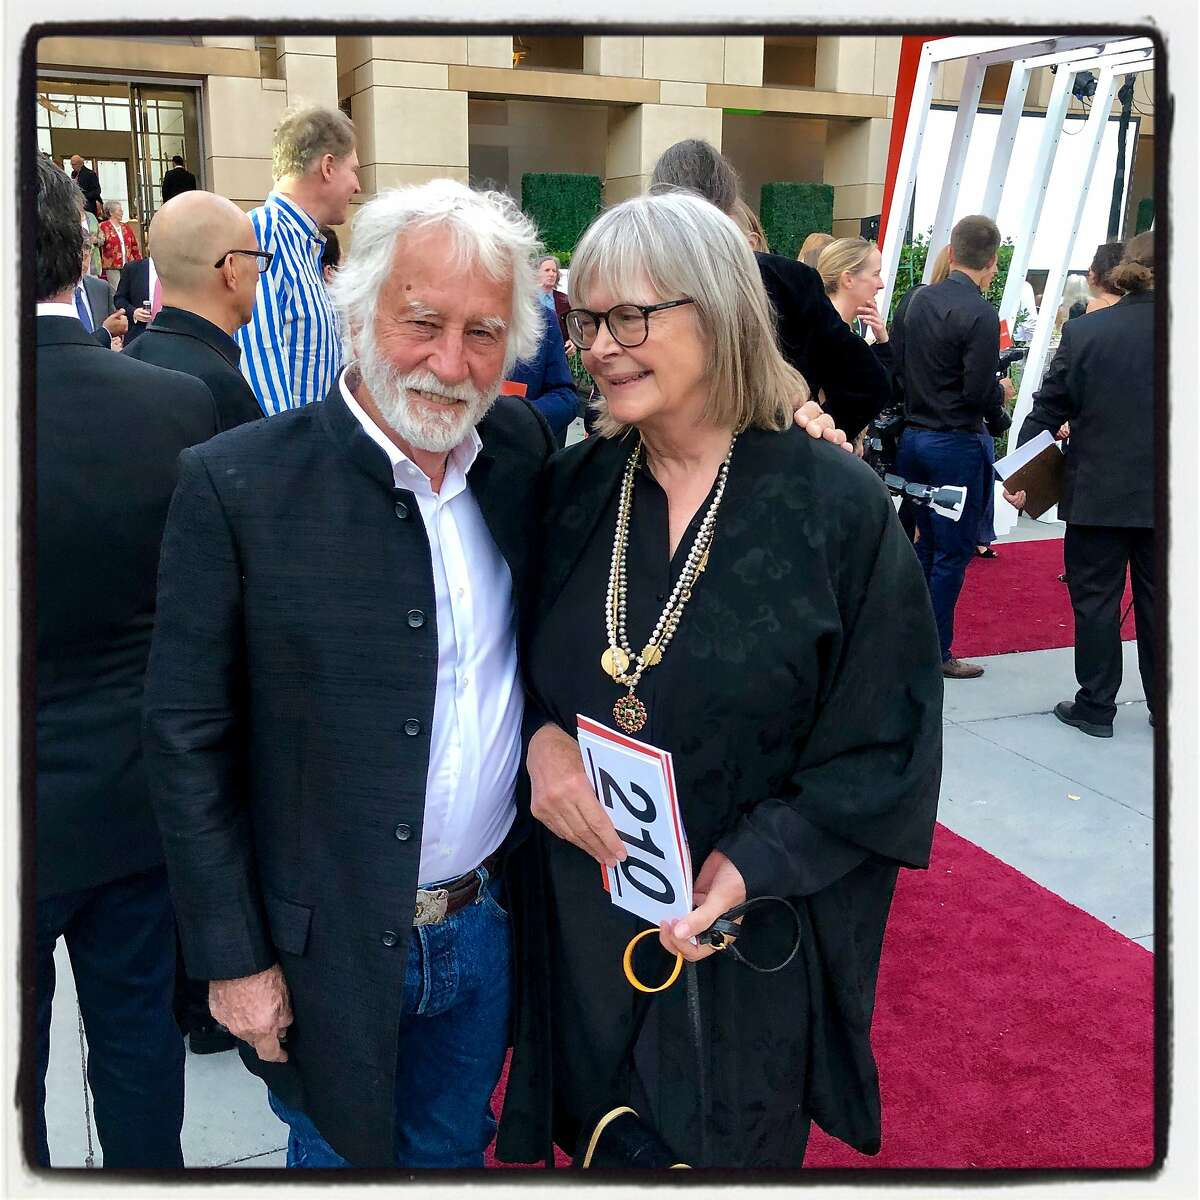 Burning Man temple sculptor David Best and his wife, Maggie Roth, at San Jose Museum of Art. Sept. 21, 2019.